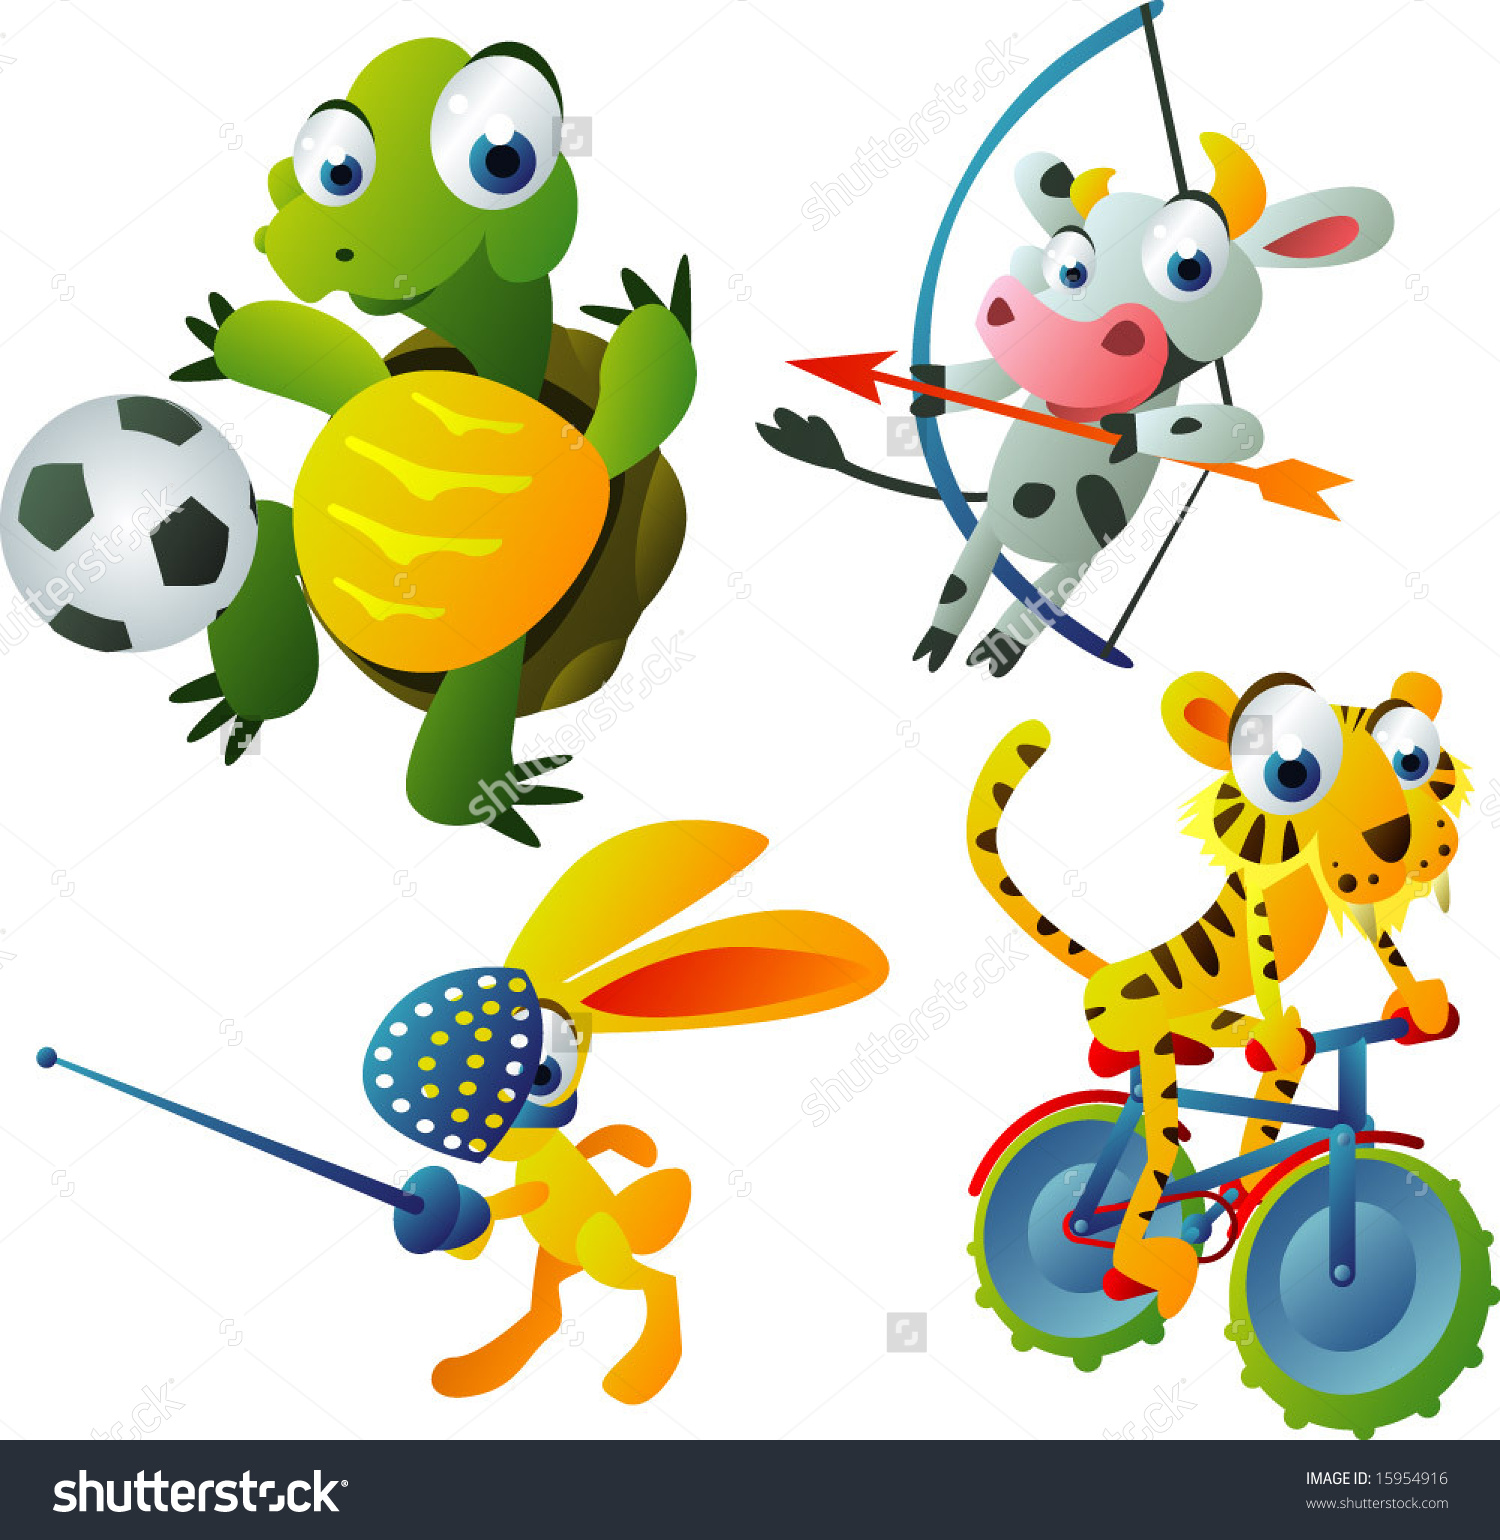 Vector Animal 42: Olympic Games Set: Turtle, Cow, Hare, Tiger.